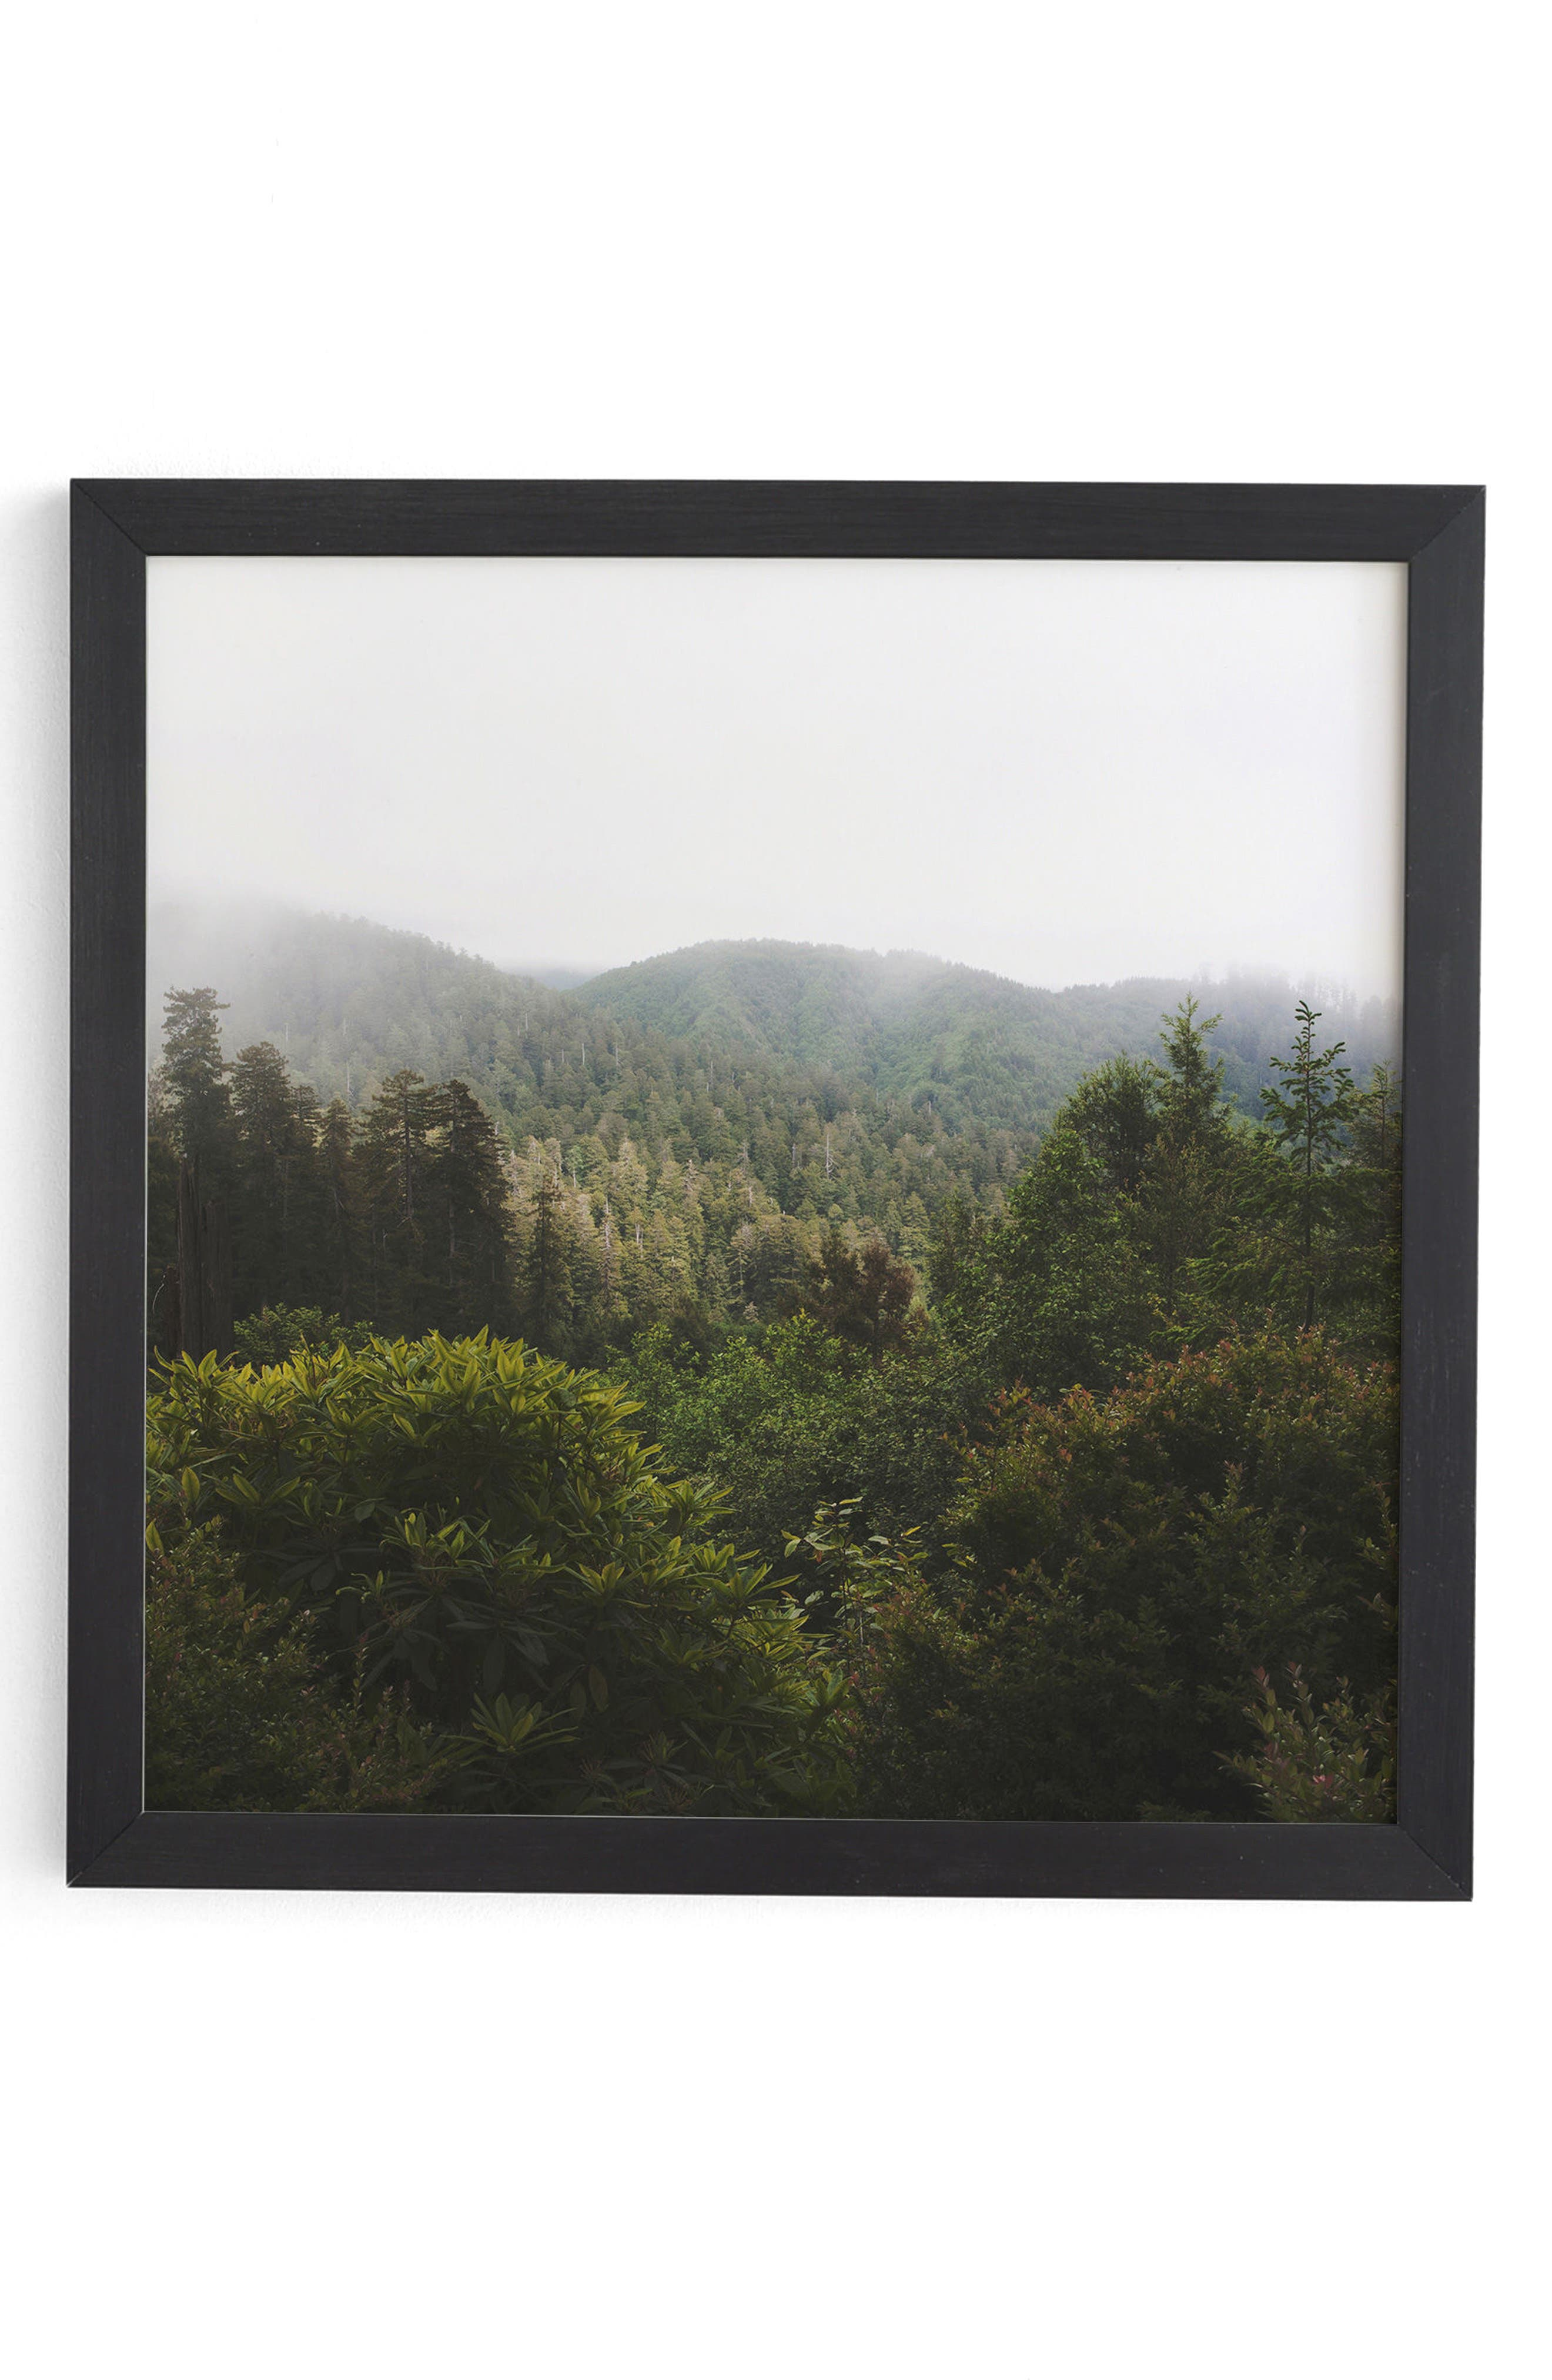 DENY DESIGNS,                             Redwood Forest Framed Wall Art,                             Main thumbnail 1, color,                             300